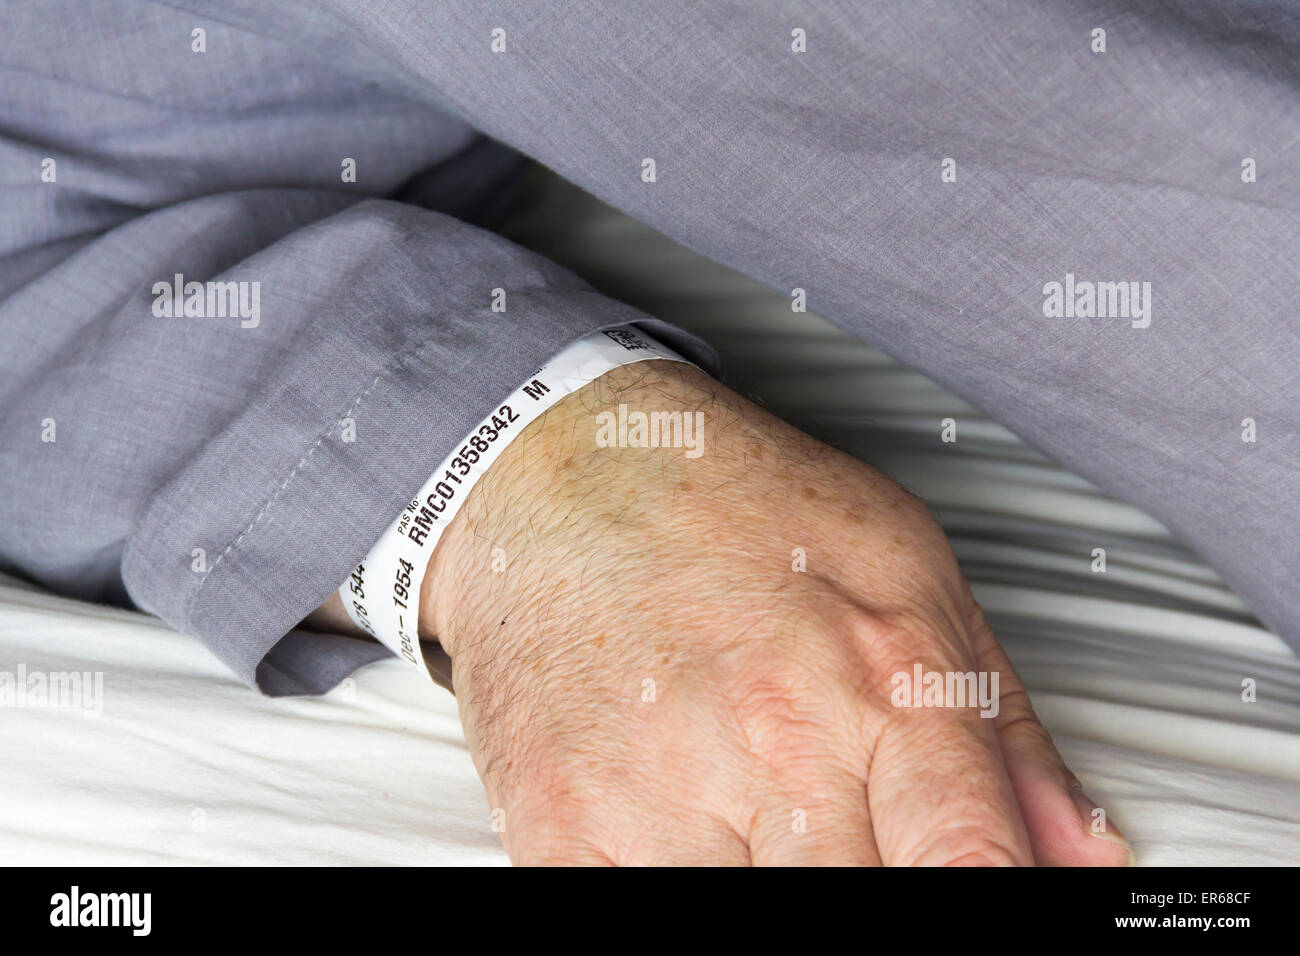 Close up of the arm of a middle aged  man in grey pyjamas in bed with a hospital patient ID wristband visible on - Stock Image